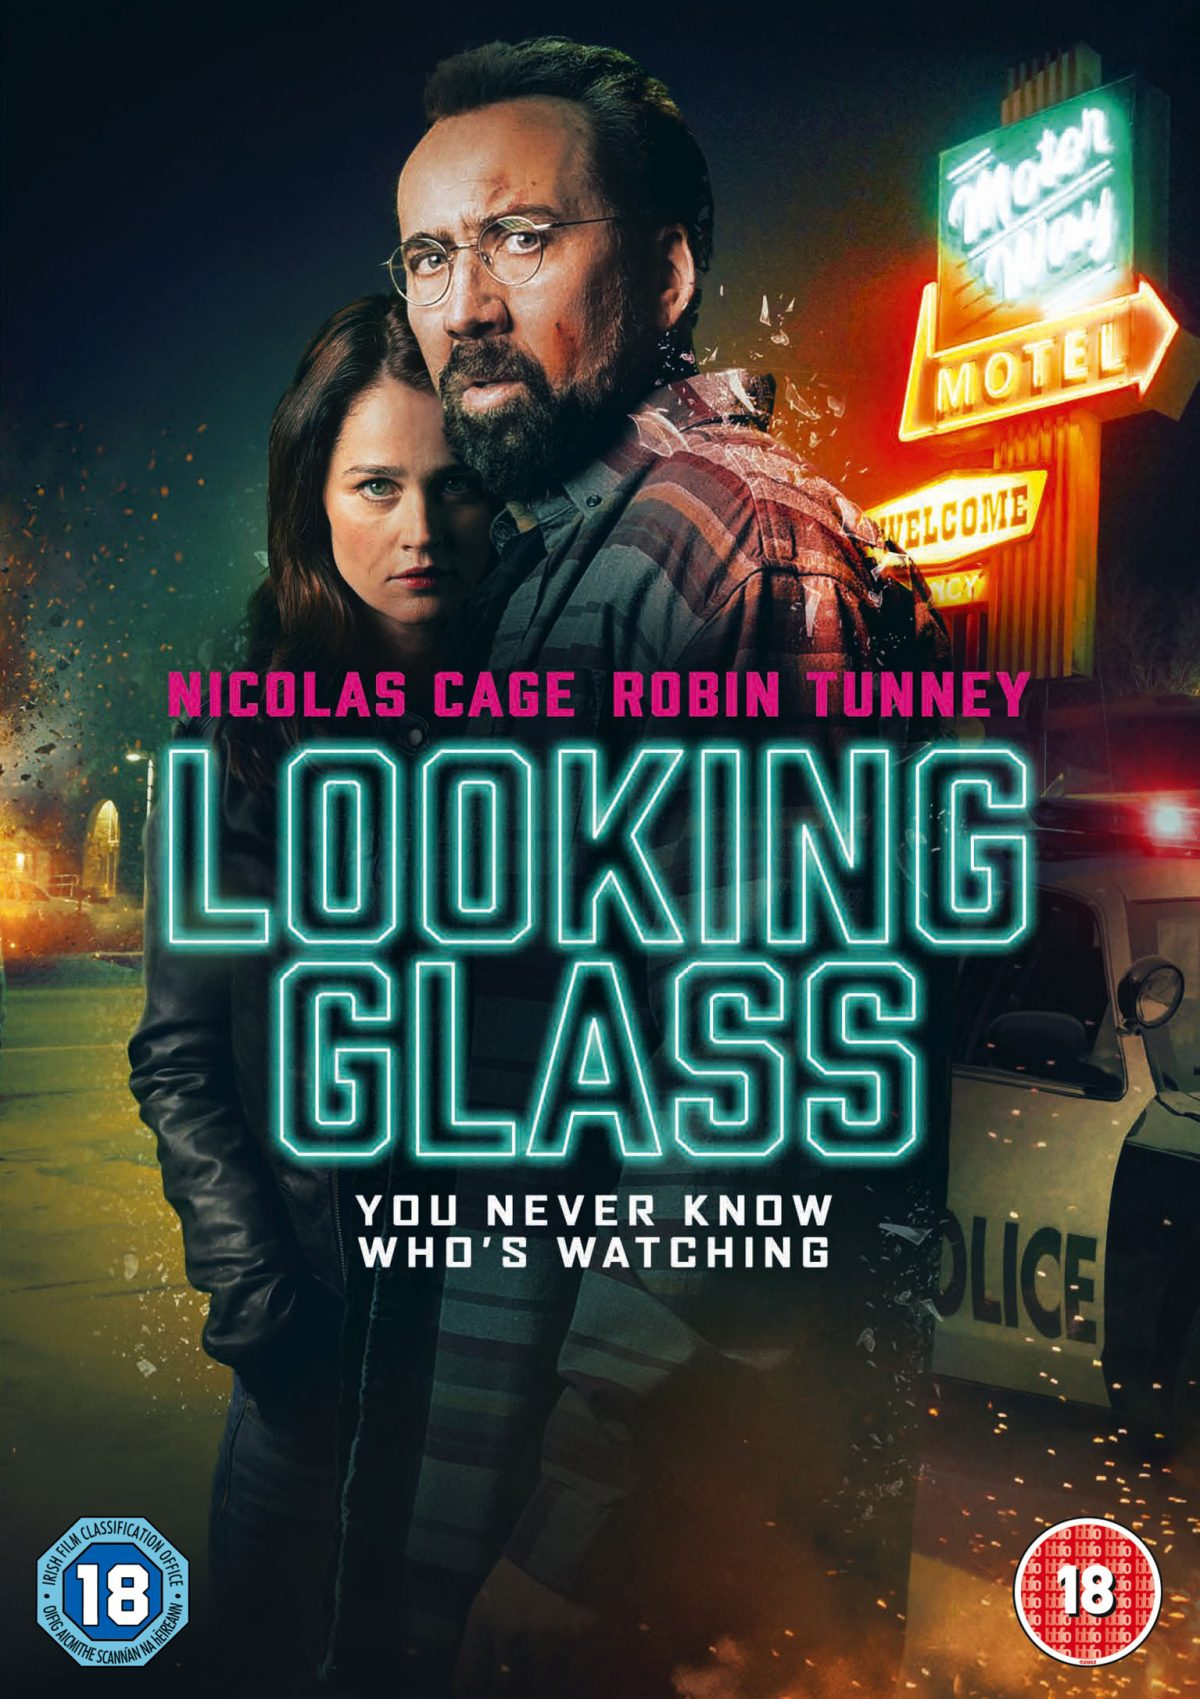 Looking Glass is a new thriller from Tim Hunter (River's Edge) also a noted television director known for Gotham, American Horror Story and classic era Twin Peaks.